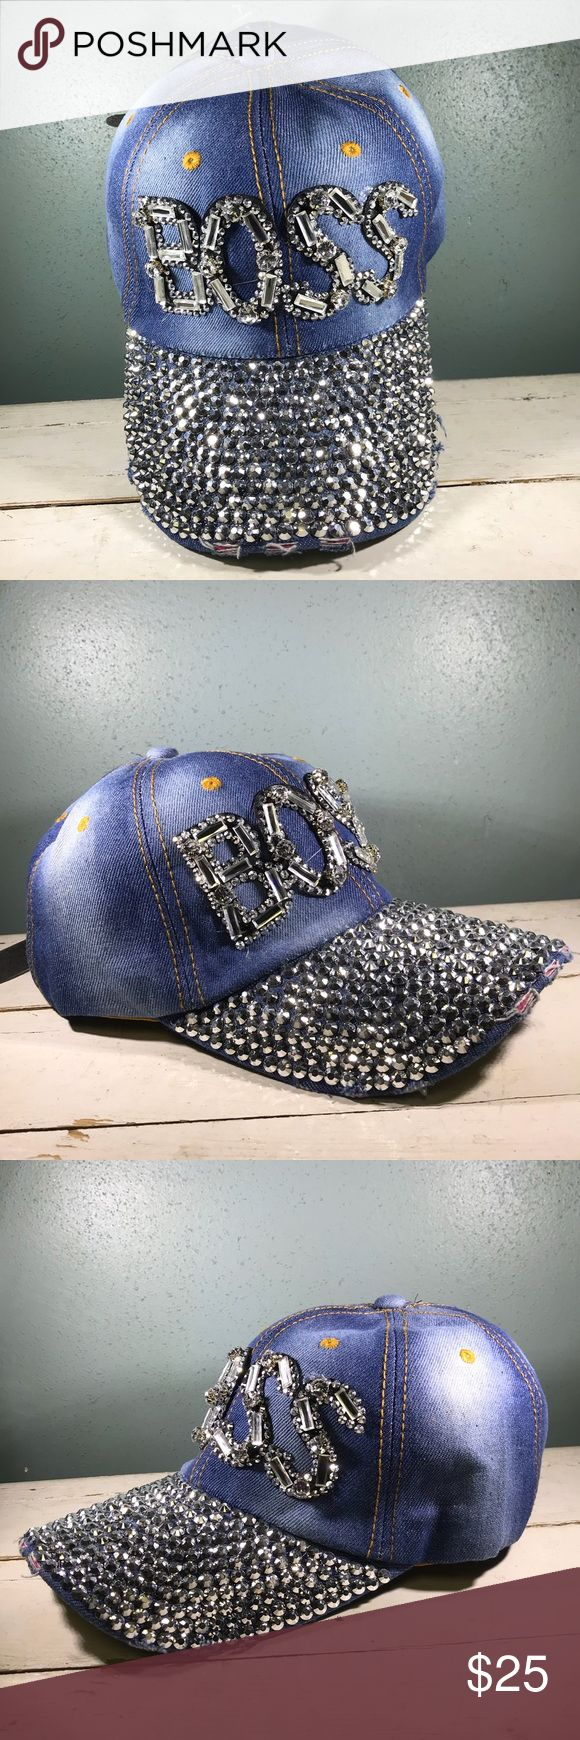 !!!HOST PICK!!! Girl BOSS Bling Ball Cap NWT Magid Hats Brand BOSS hat. Adult sized denim like hat with jewels sewn on to spell out BOSS. The bill of the hat has a distressed edge and is covered in silver studs.  The hat has a leather like size adjuster on the back.   Super cute accessory for Boss ladies! Magid Hats Accessories Hats